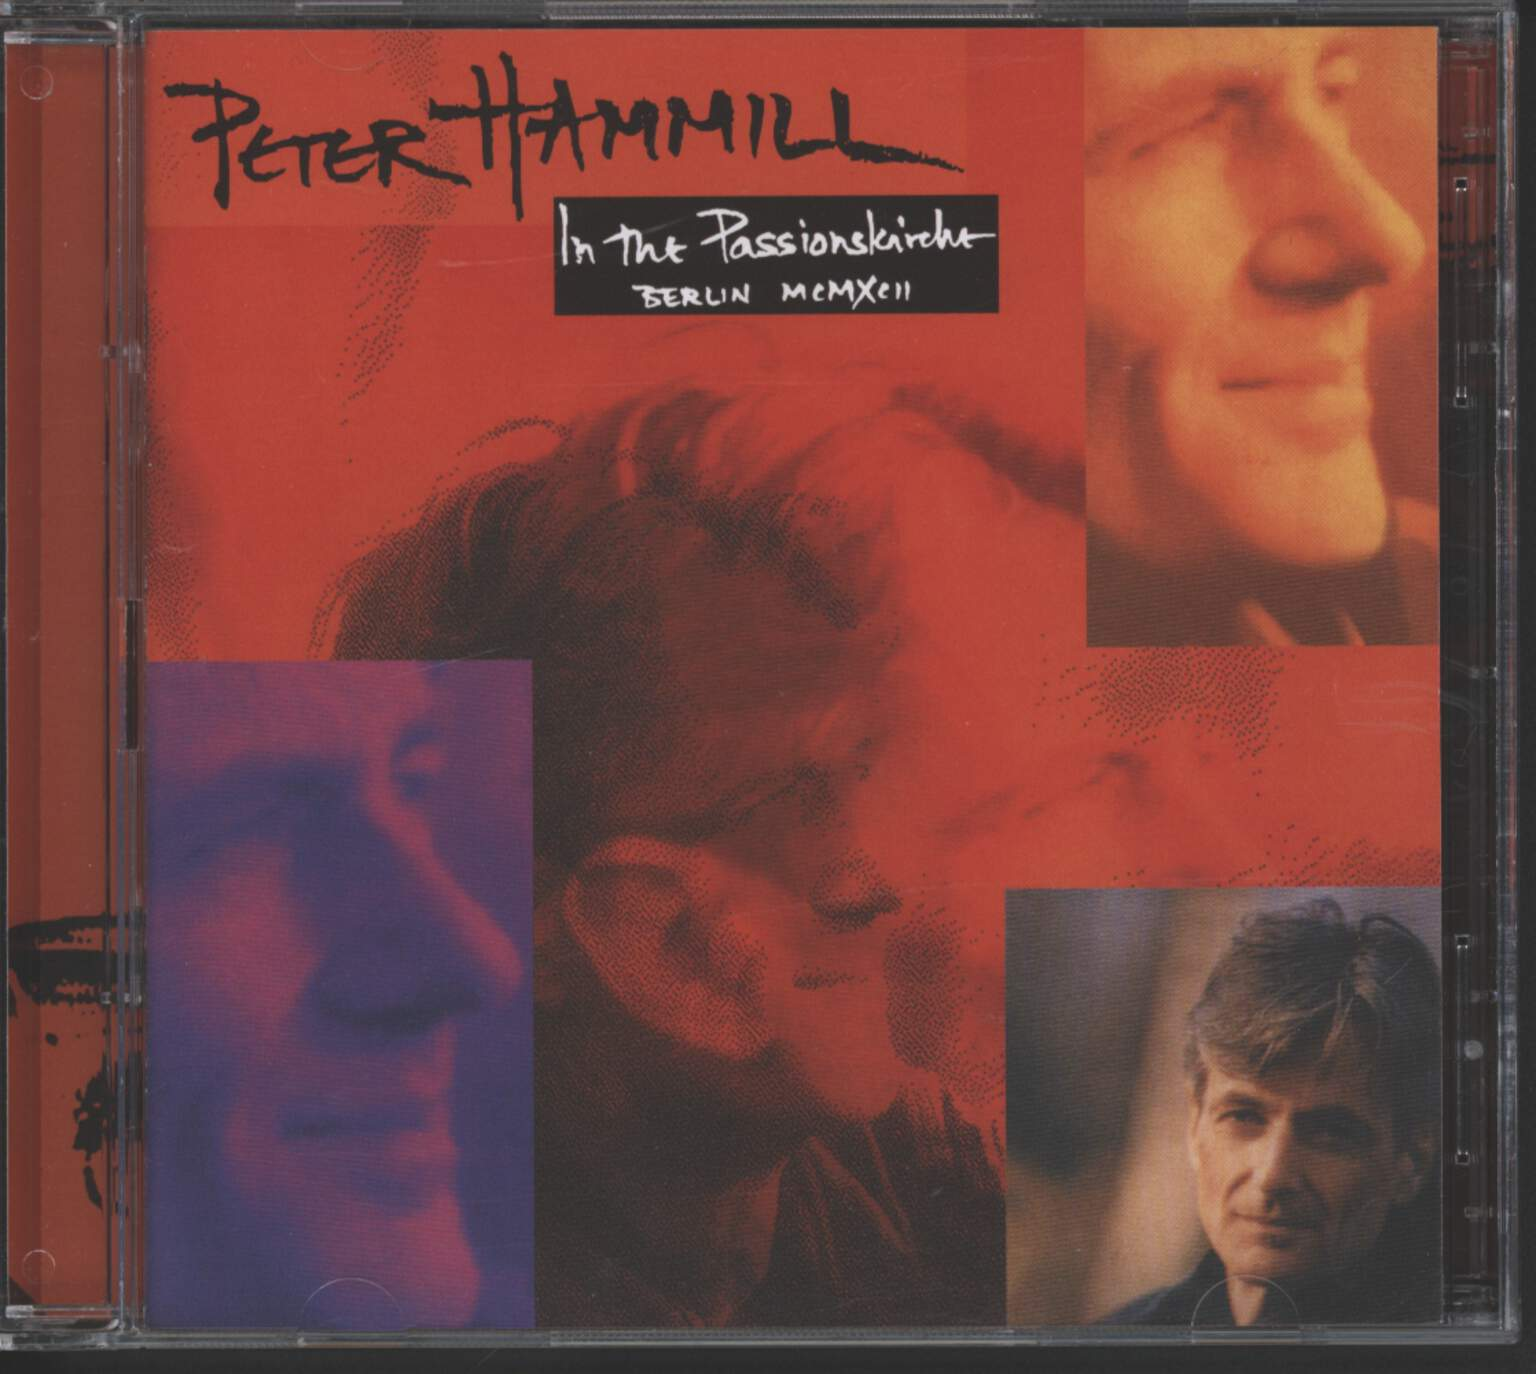 Peter Hammill: In The Passionskirche - Berlin MCMXCII, CD